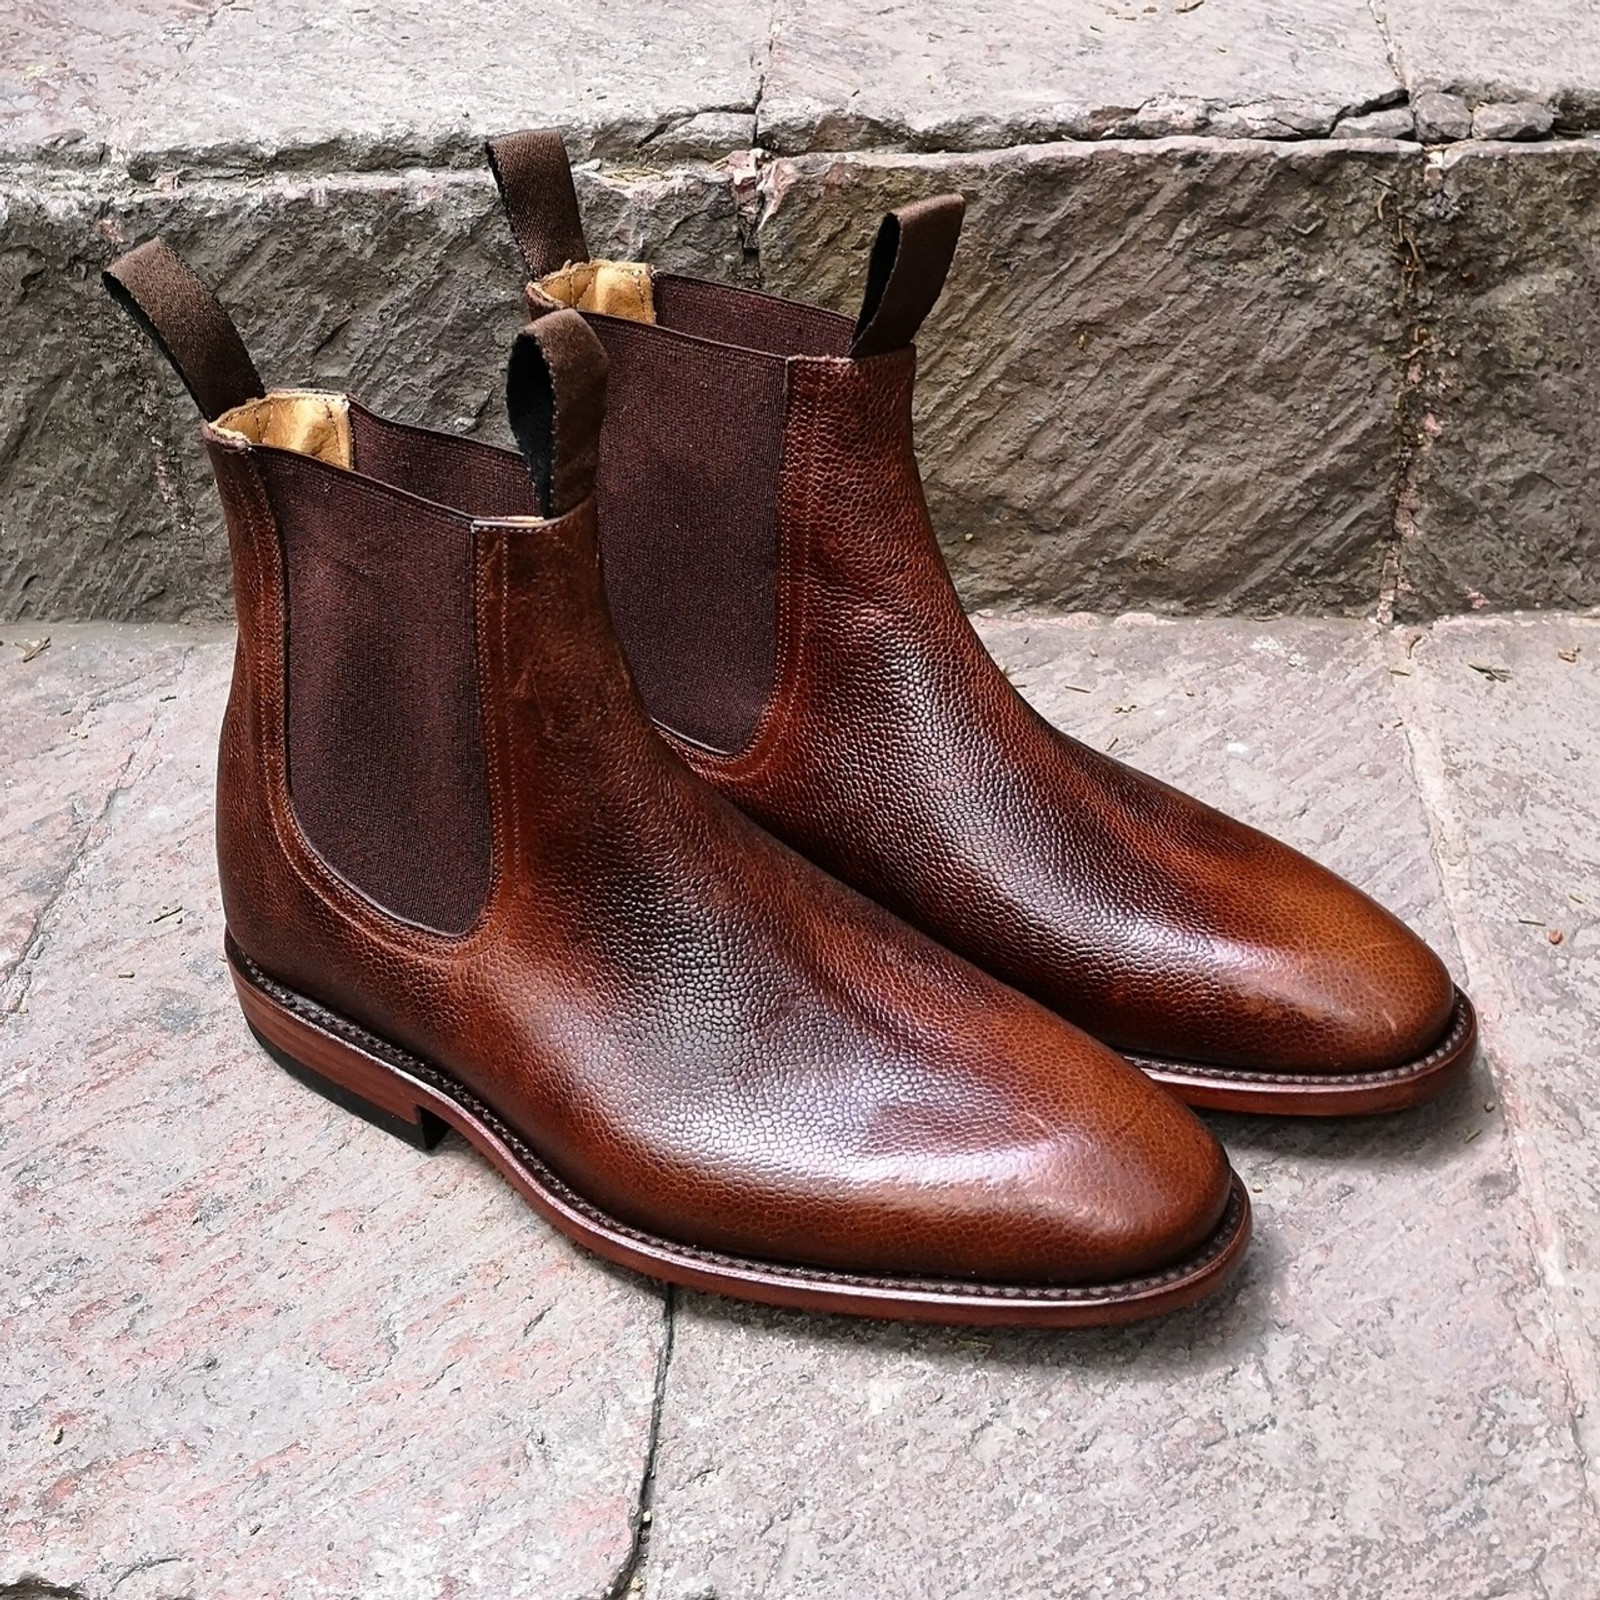 CHESTNUT SCOTCH GRAIN FOOTWEAR